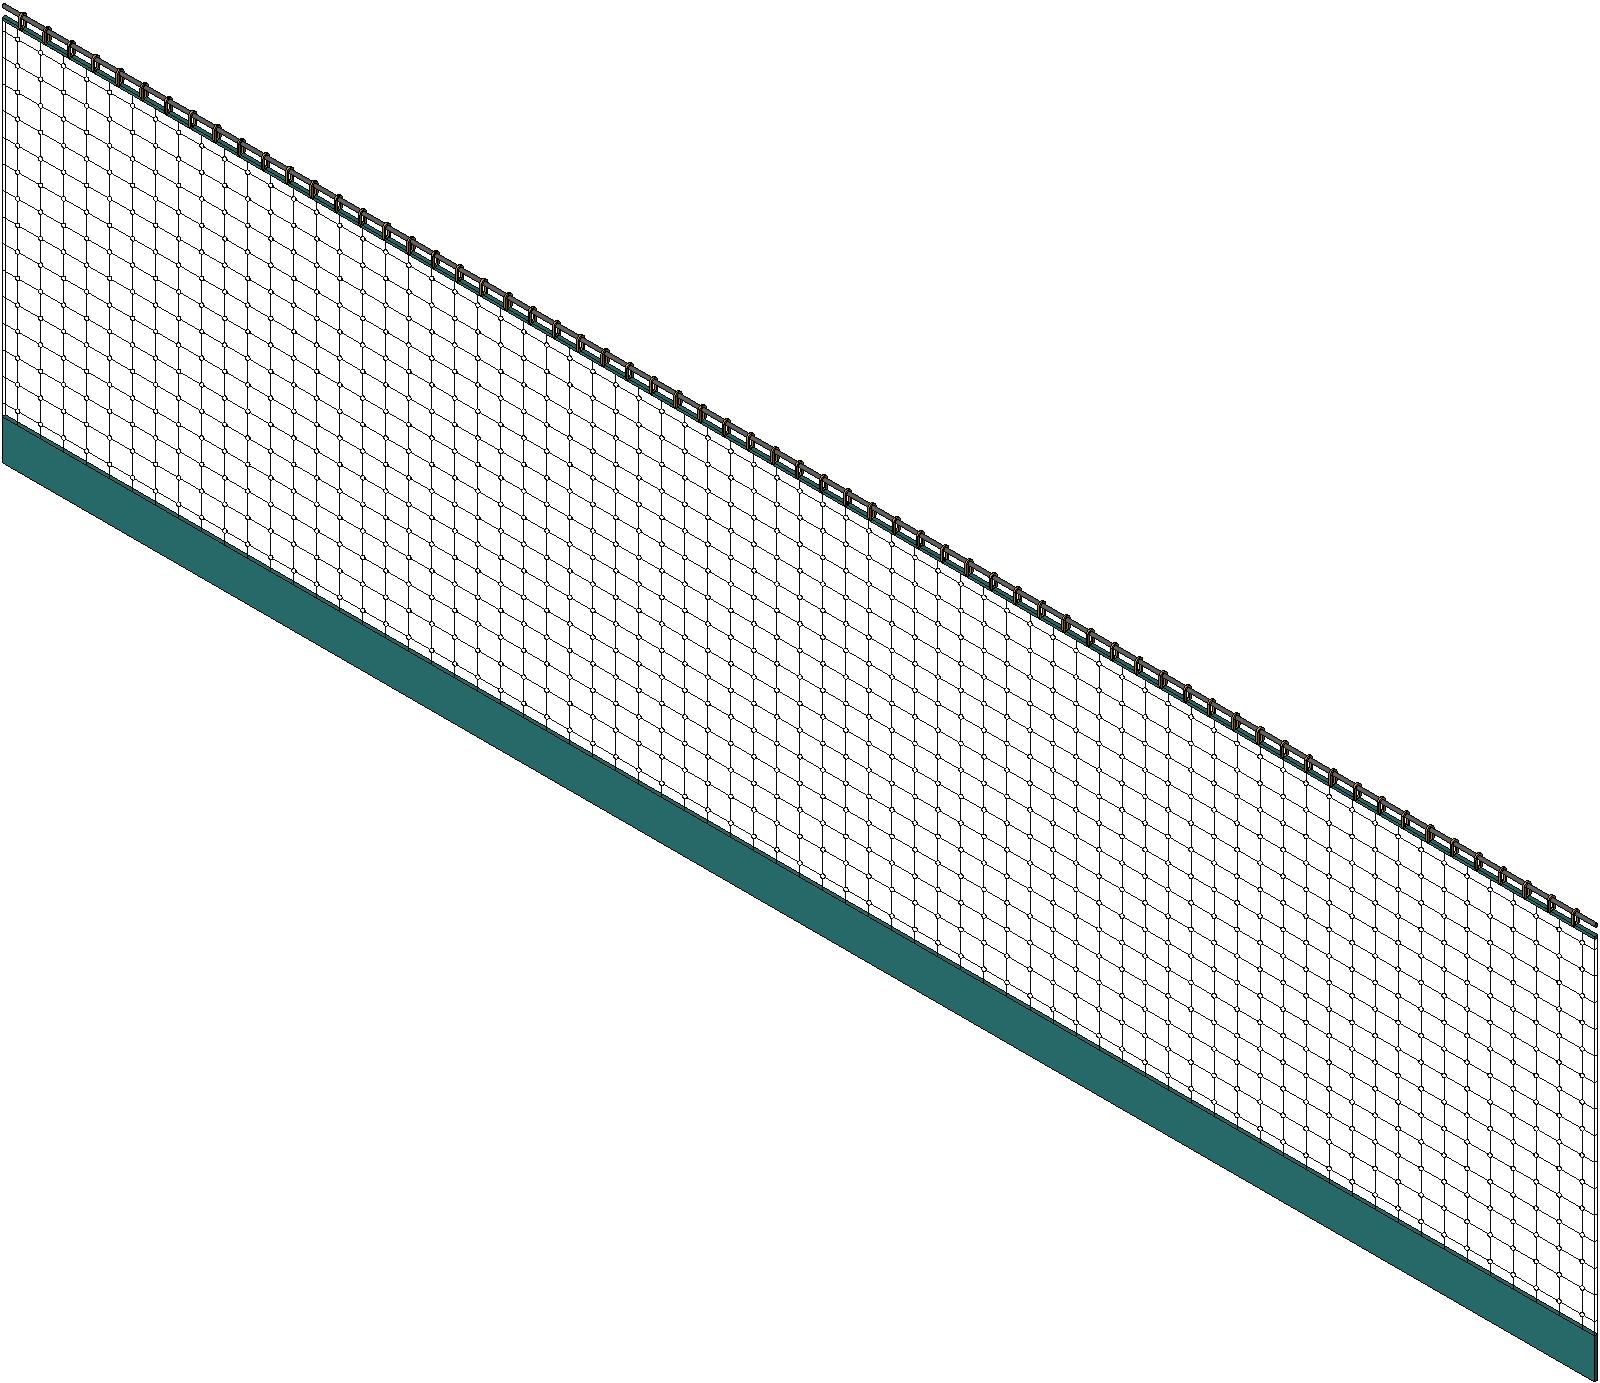 banner library download Tennis net clipart. Clip art library